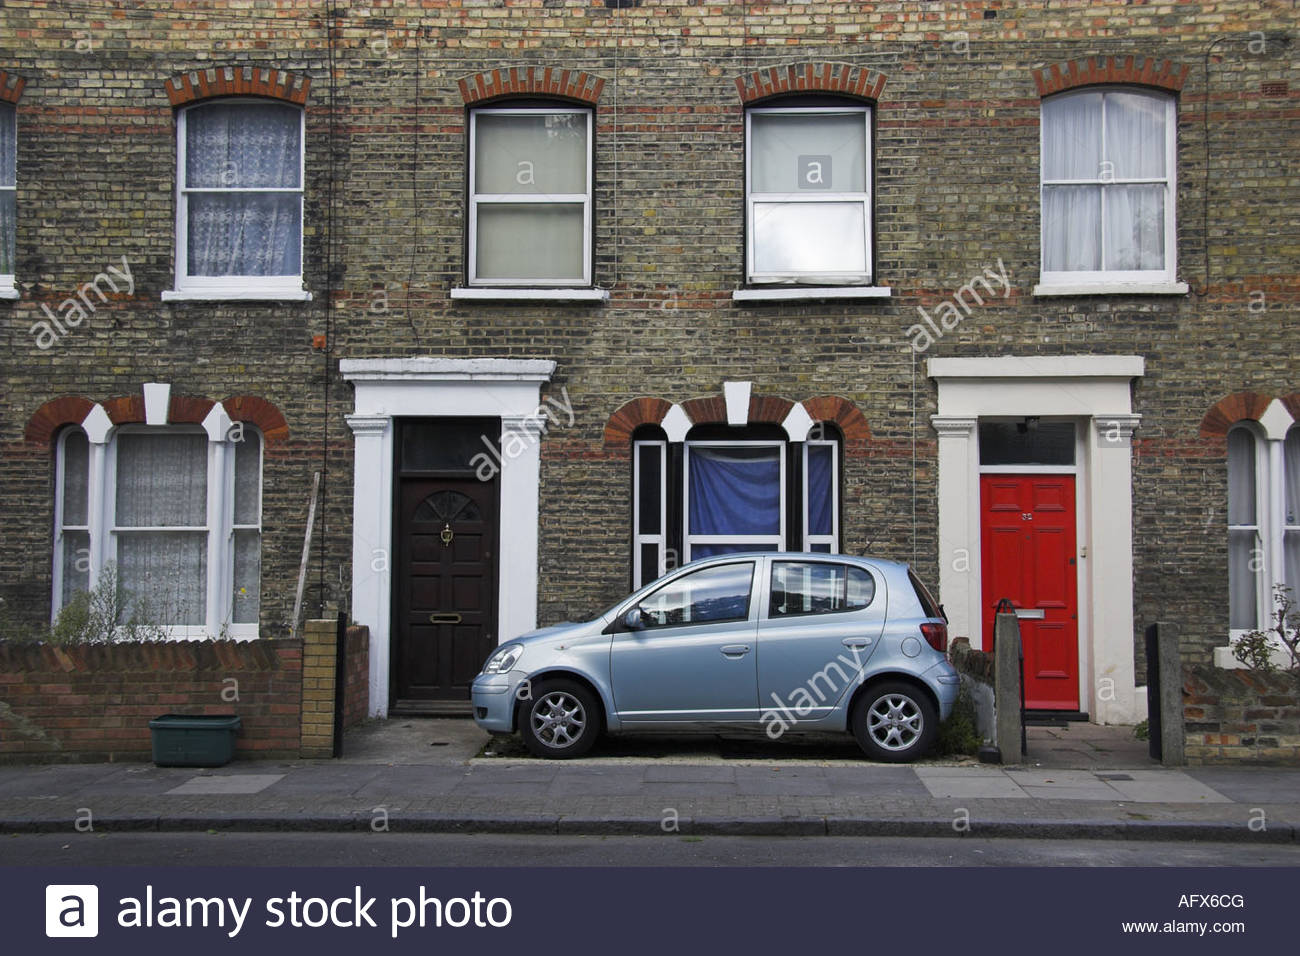 little car parked in a tiny front garden in Finsbury Park, London, UK. - Stock Image